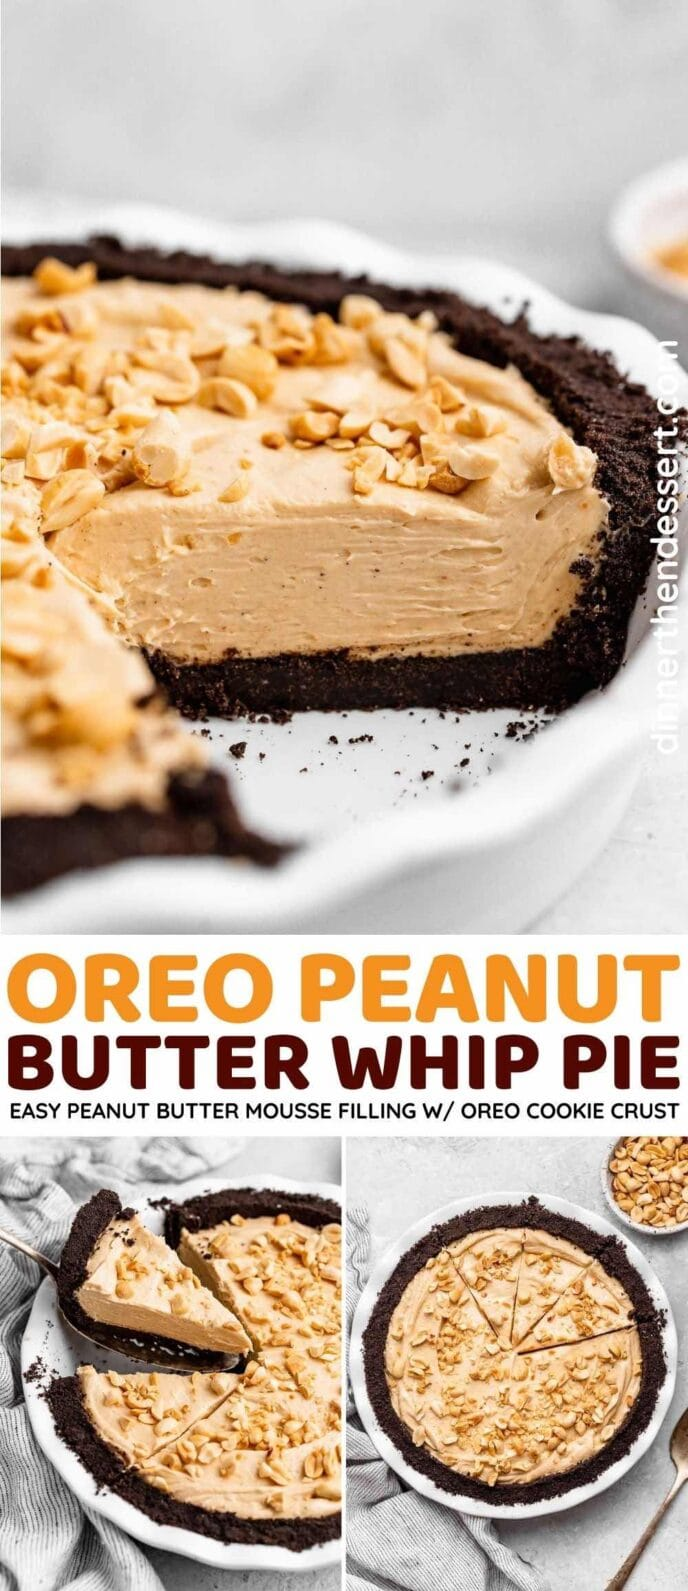 Oreo Peanut Butter Whip Pie collage